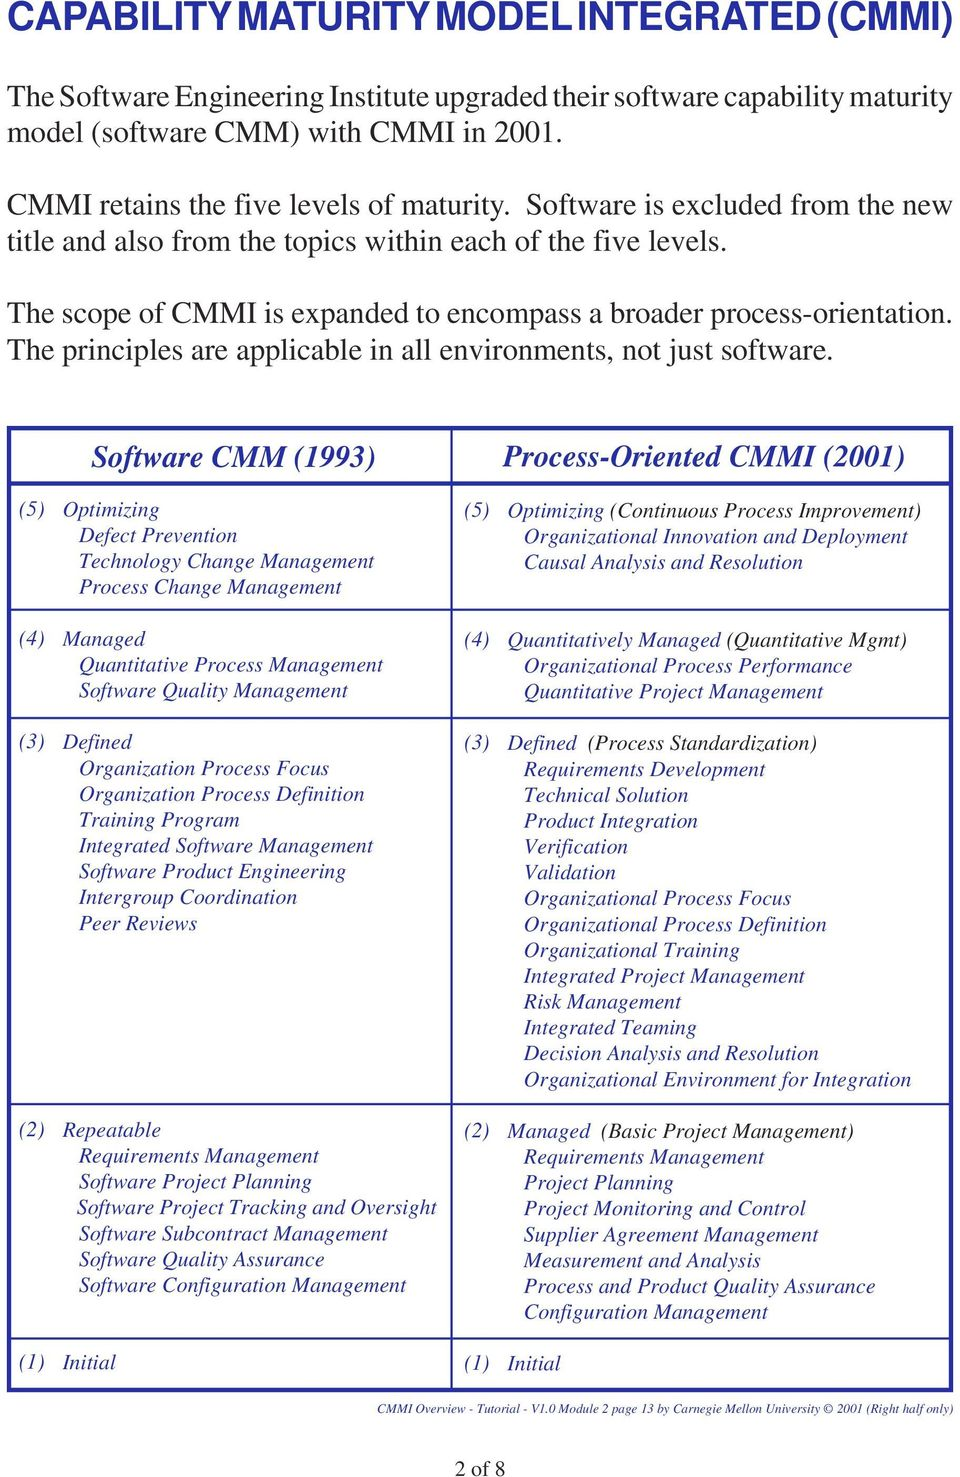 Seis Capability Maturity Model Integrated Cmmi Relative To Icms